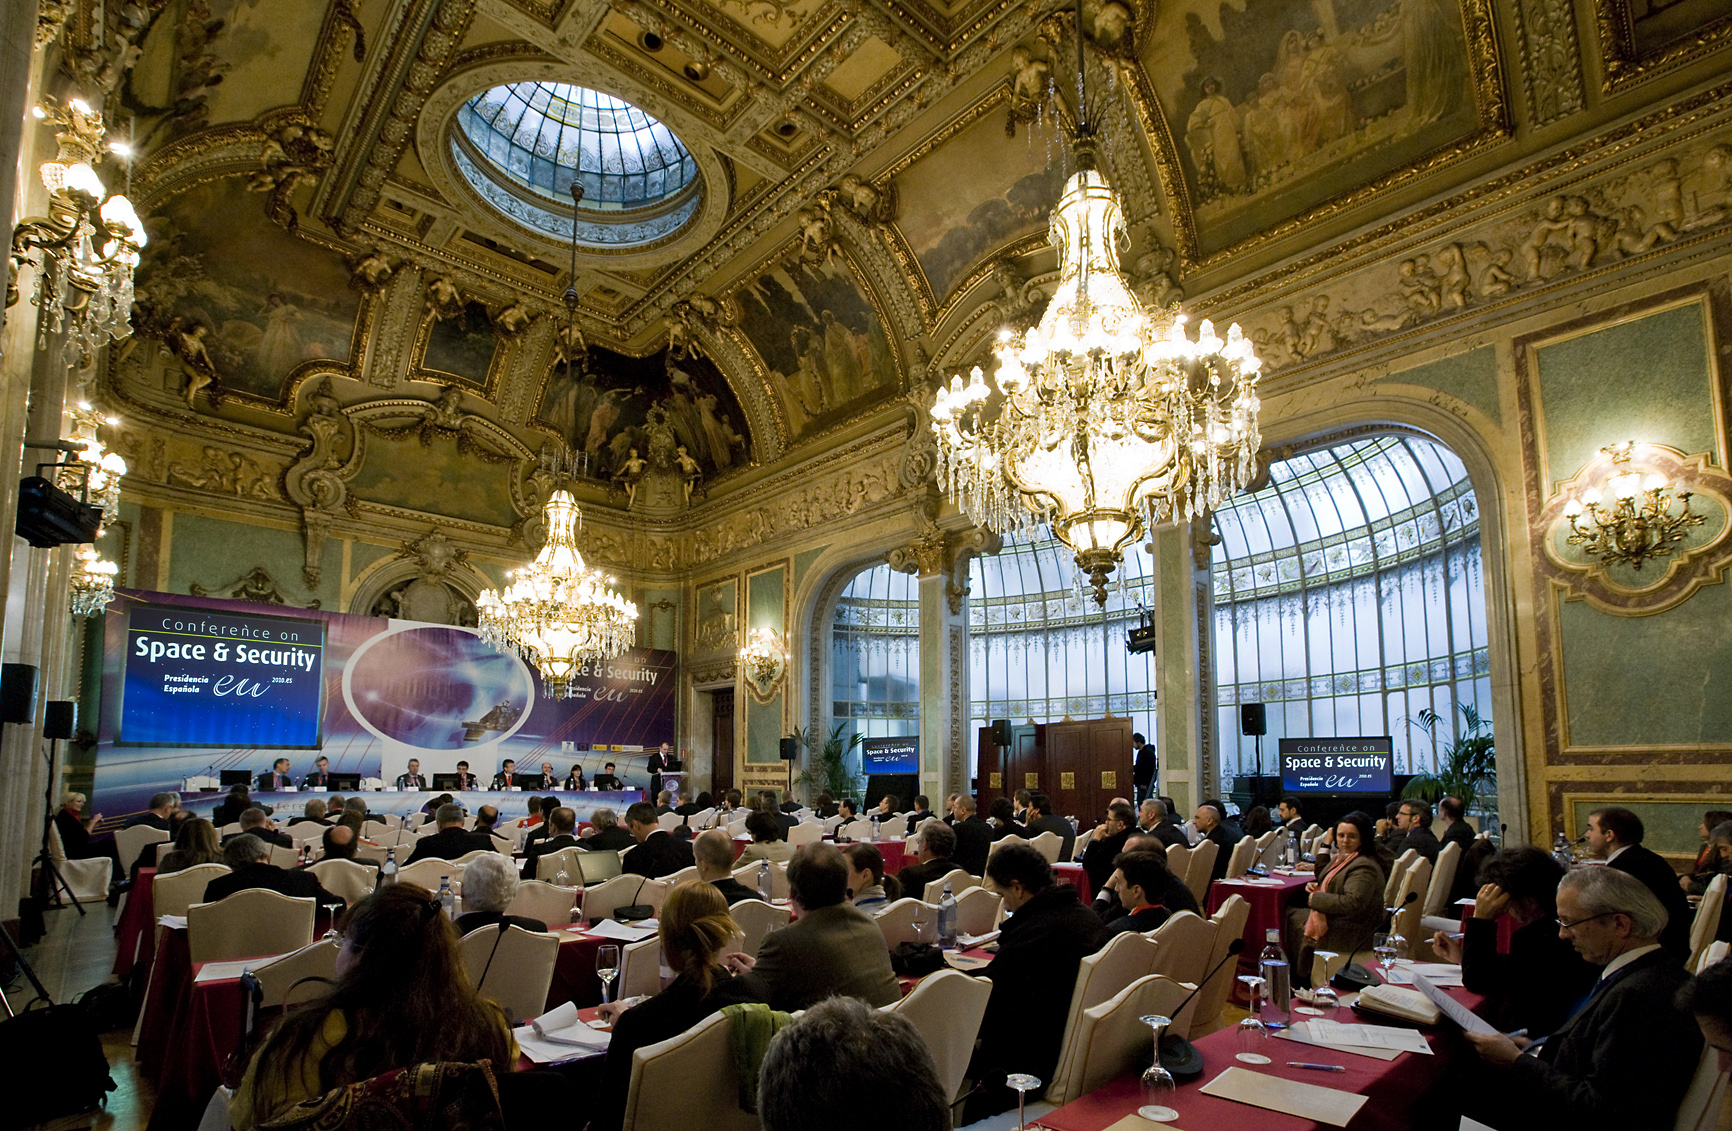 Space in images 2010 03 conference on space and - Space madrid ...